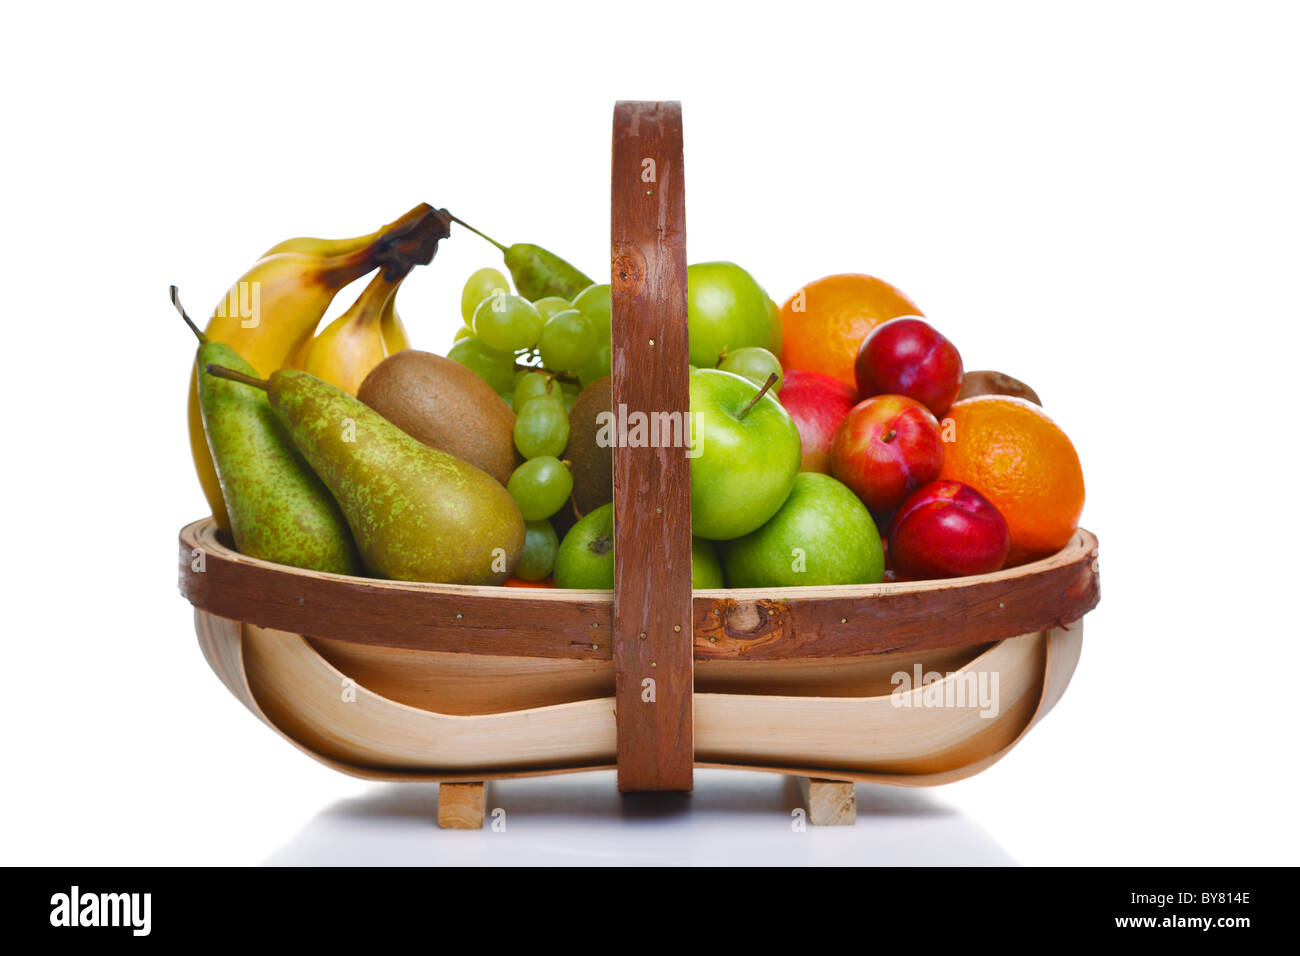 Photo of a wooden trug full of fresh fruit, isolated on a white background. Stock Photo